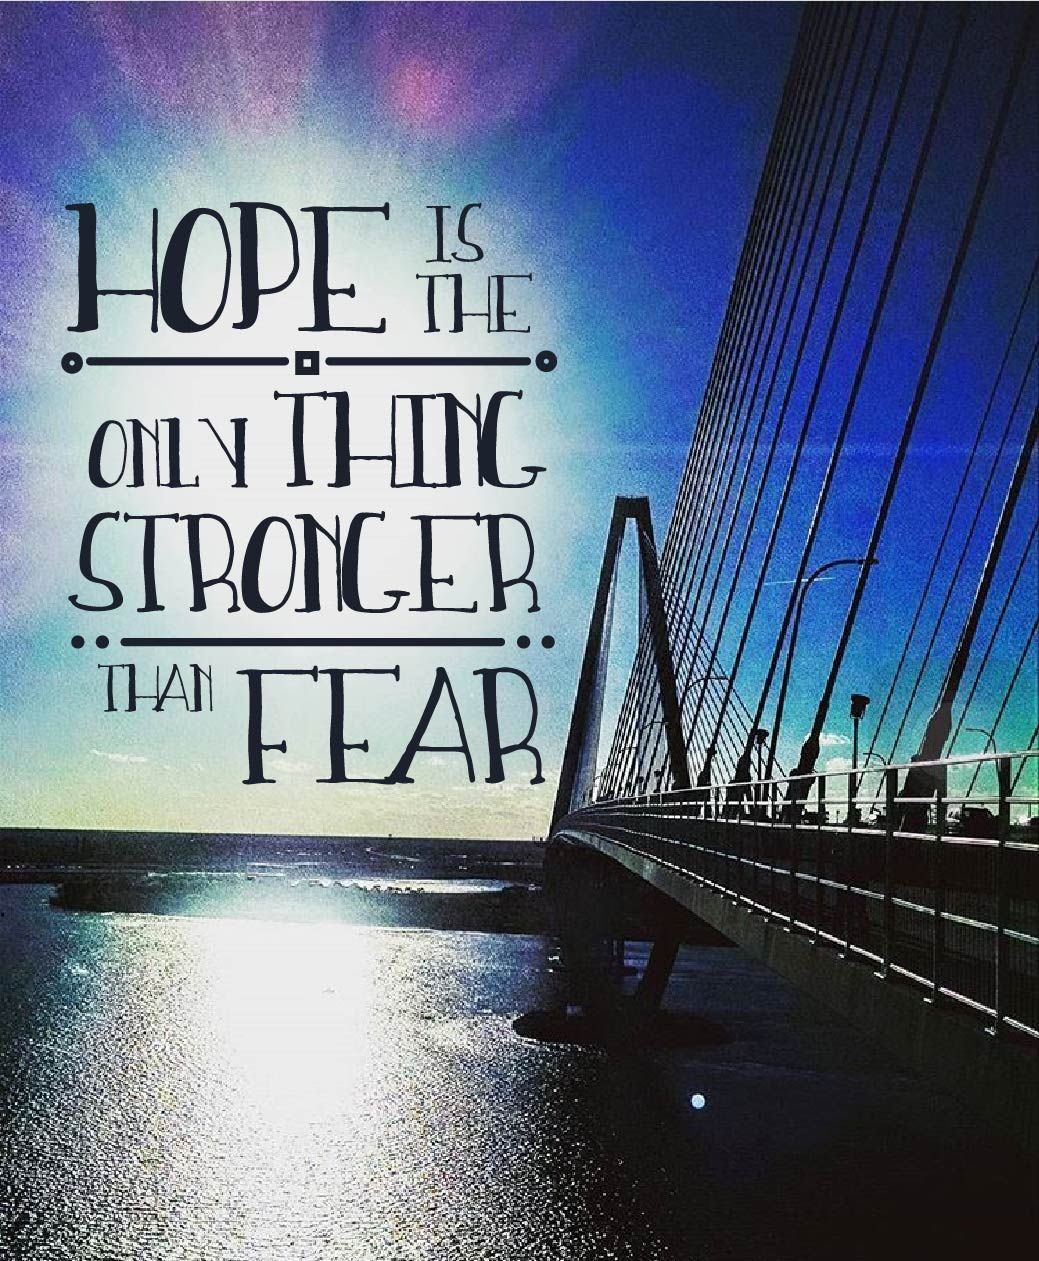 The Power Of Hope Quotes: Hope Is The Only Thing Stronger Than Fear